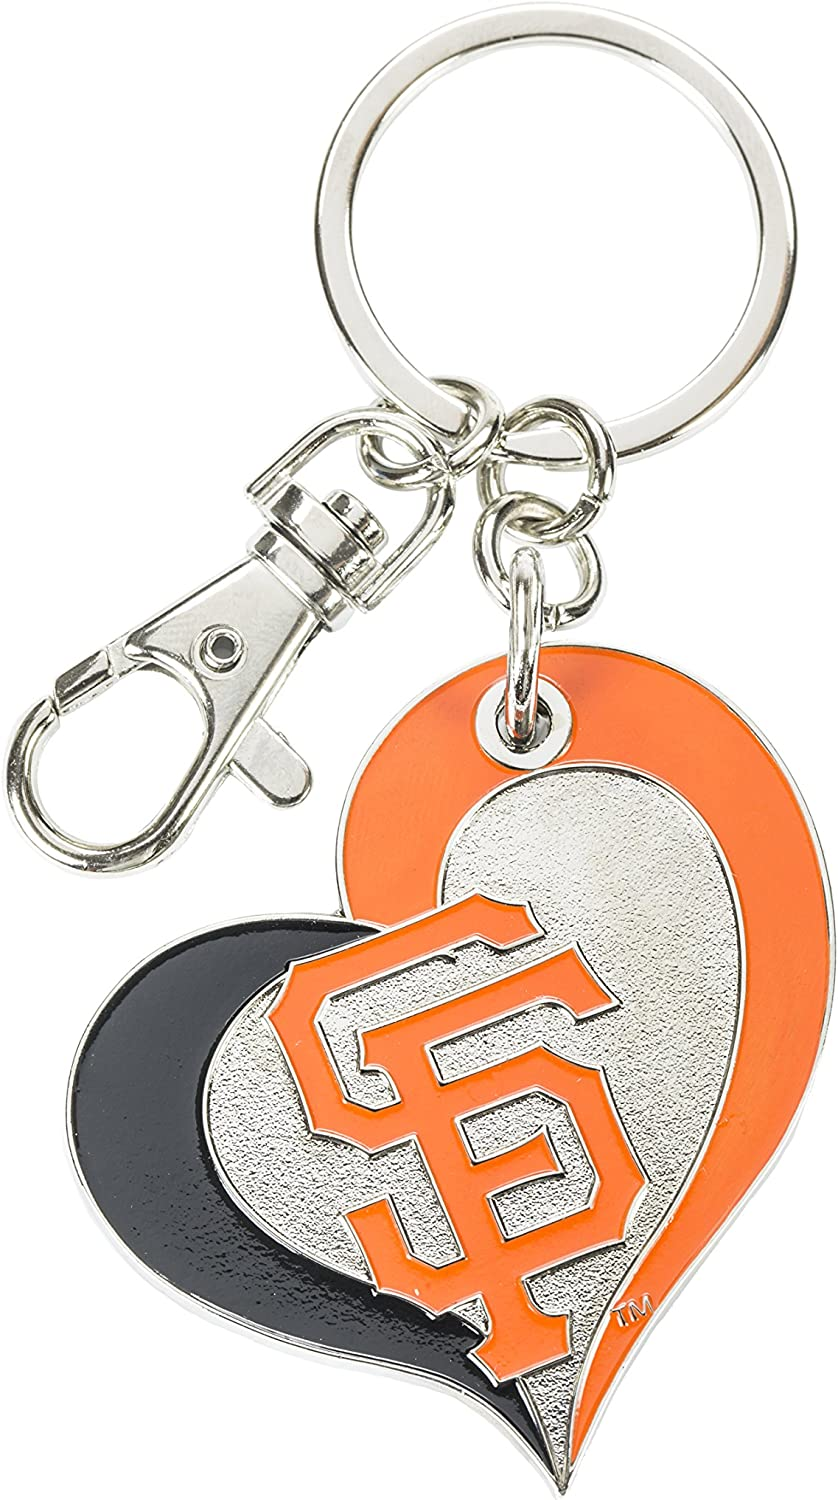 Amazon.com: aminco MLB San Francisco Giants - Llavero con ...